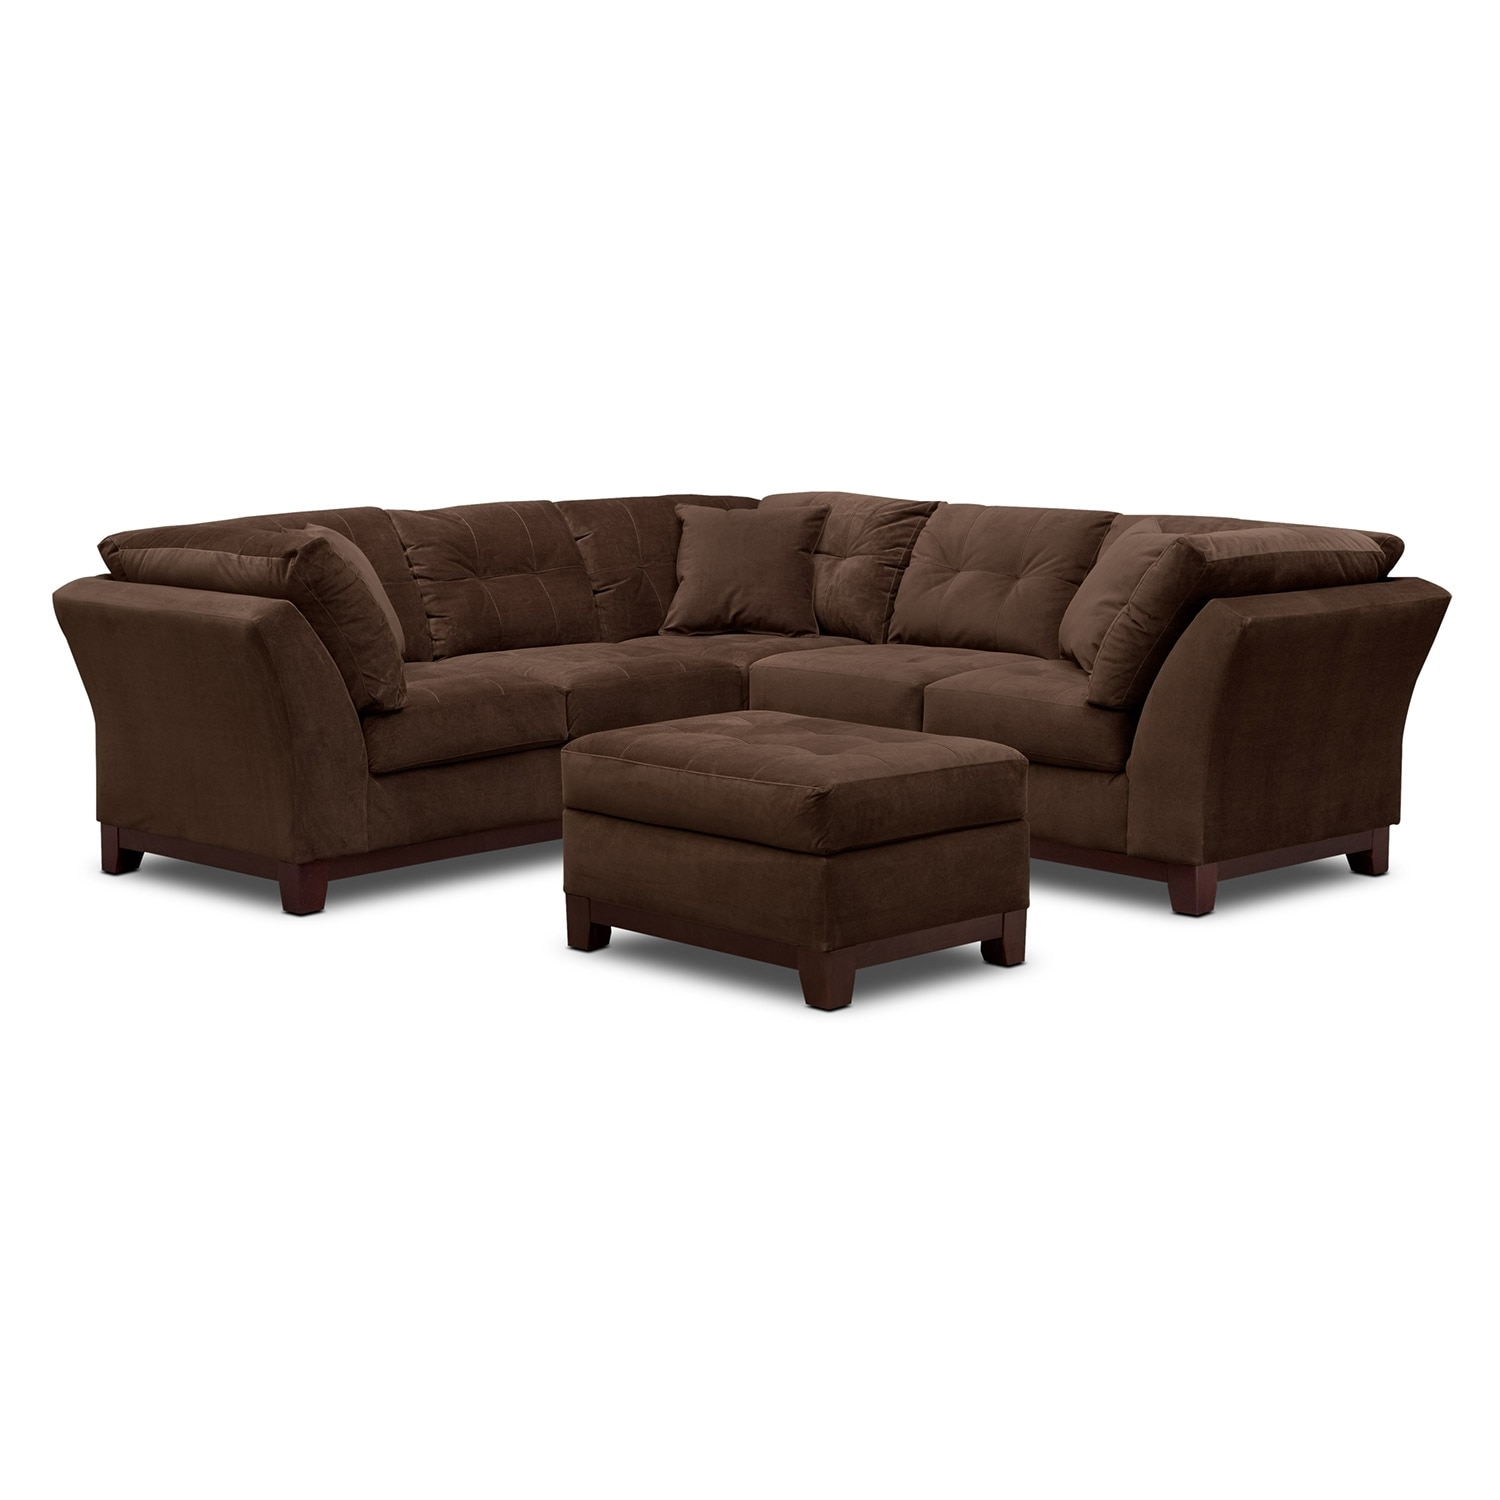 Living Room Furniture - Solace Chocolate II 2 Pc. Sectional (Alternate II Reverse) and Ottoman